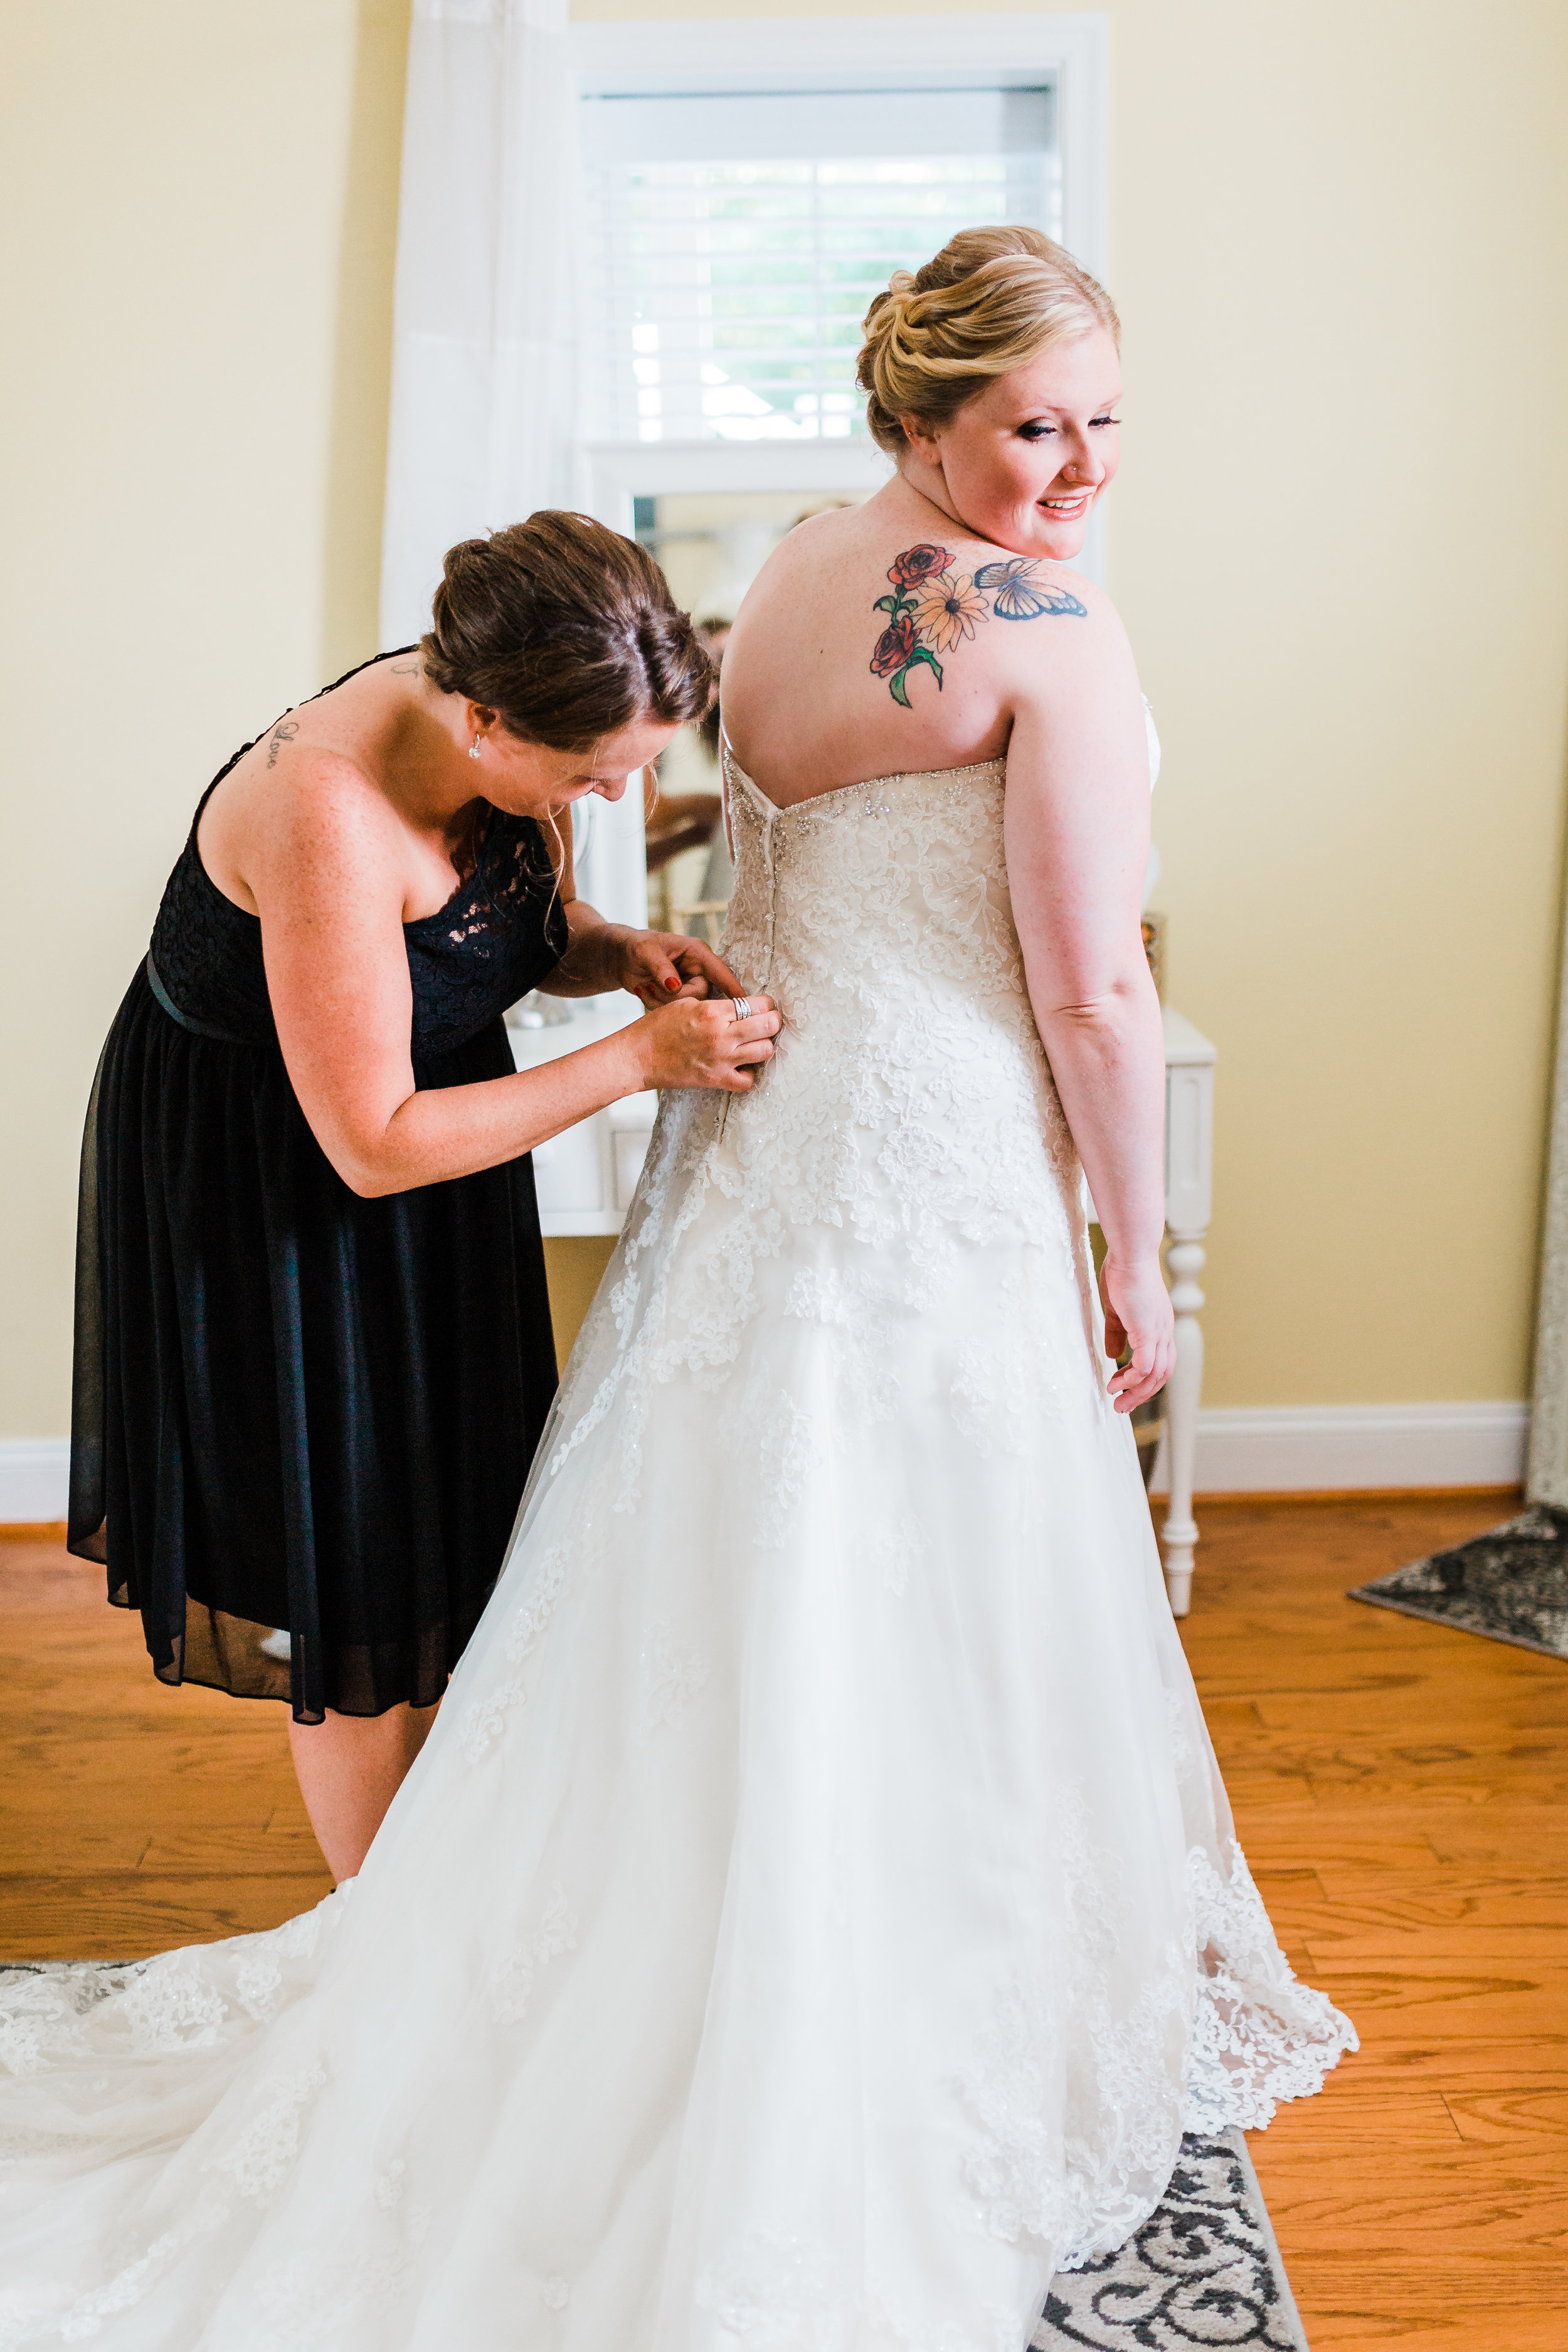 waterfront wedding venues in maryland - wedding venues in md with a bridal suite - bridal cottage - best maryland wedding photographer